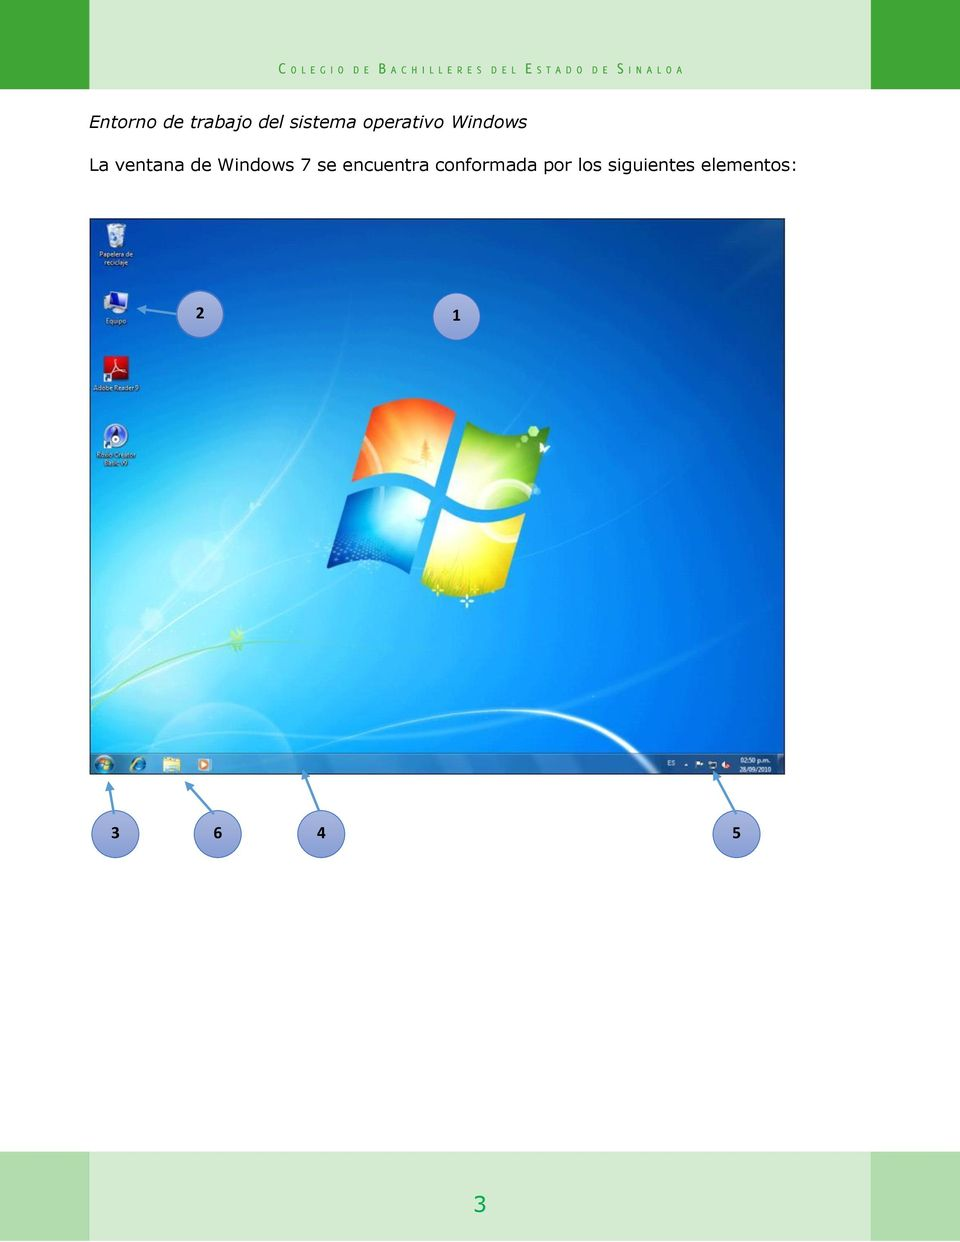 Windows 7 se encuentra conformada